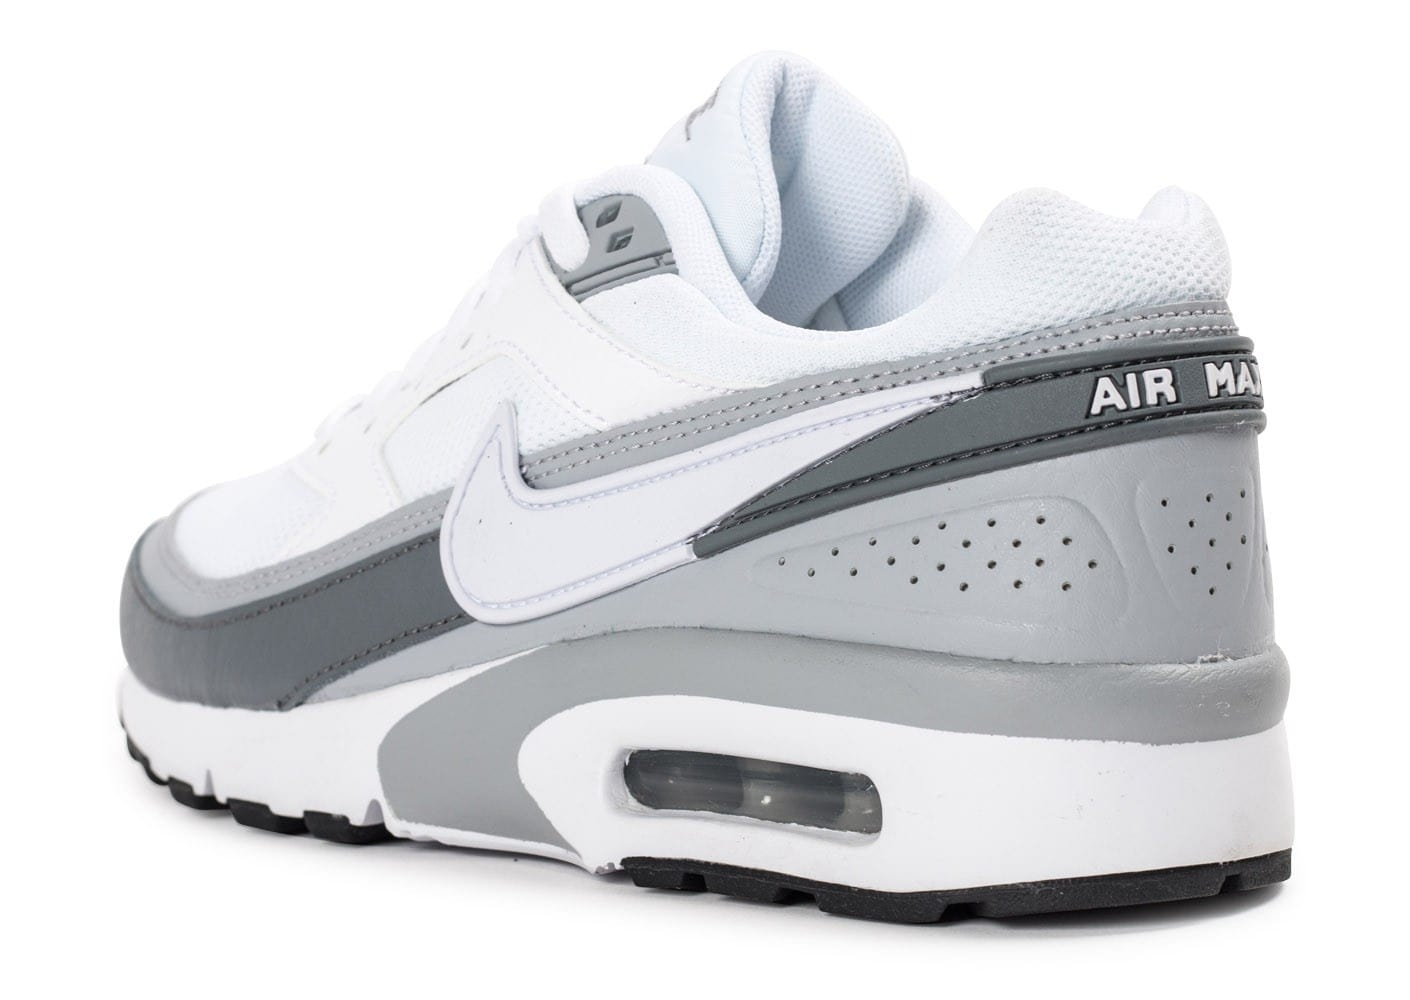 newest 6ca52 20be1 ... Chaussures Nike Air Max BW Junior blanche et grise vue arrière .